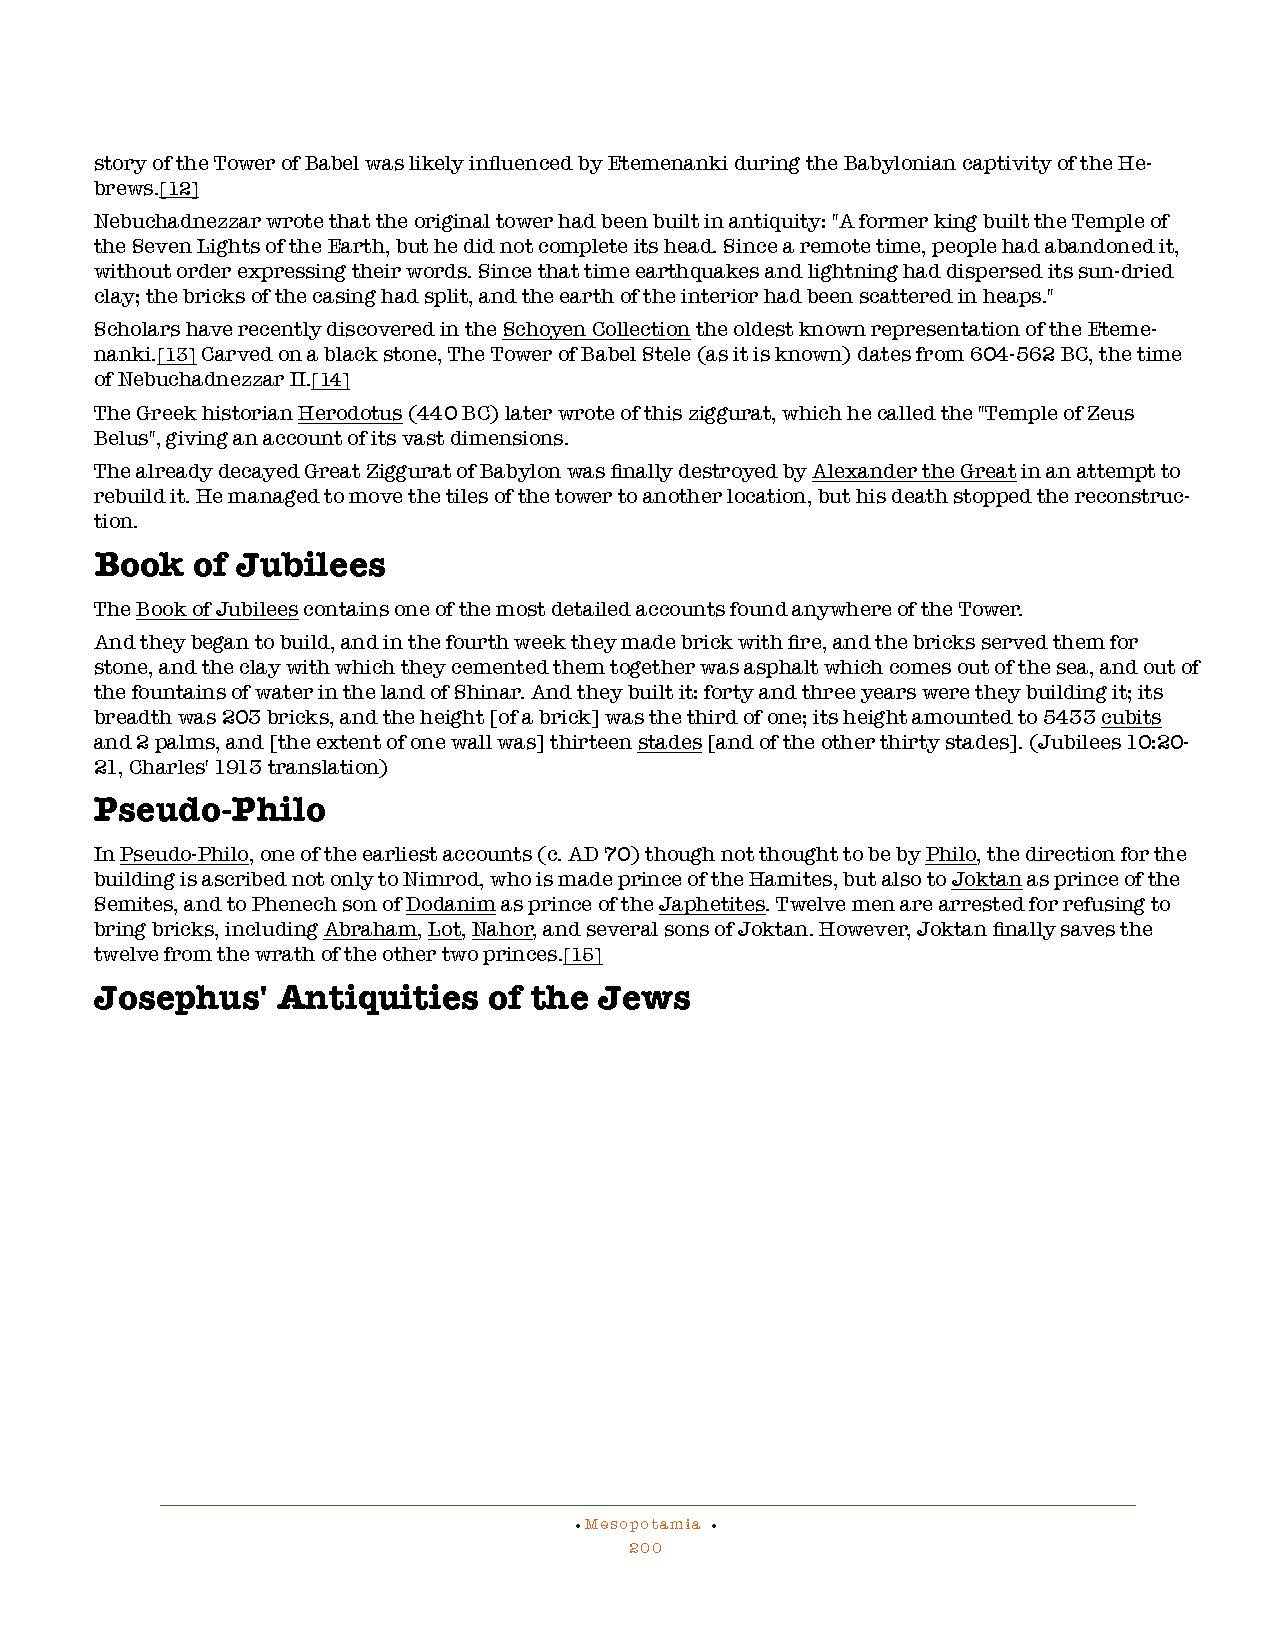 HOCE- Fertile Crescent Notes_Page_200.jpg